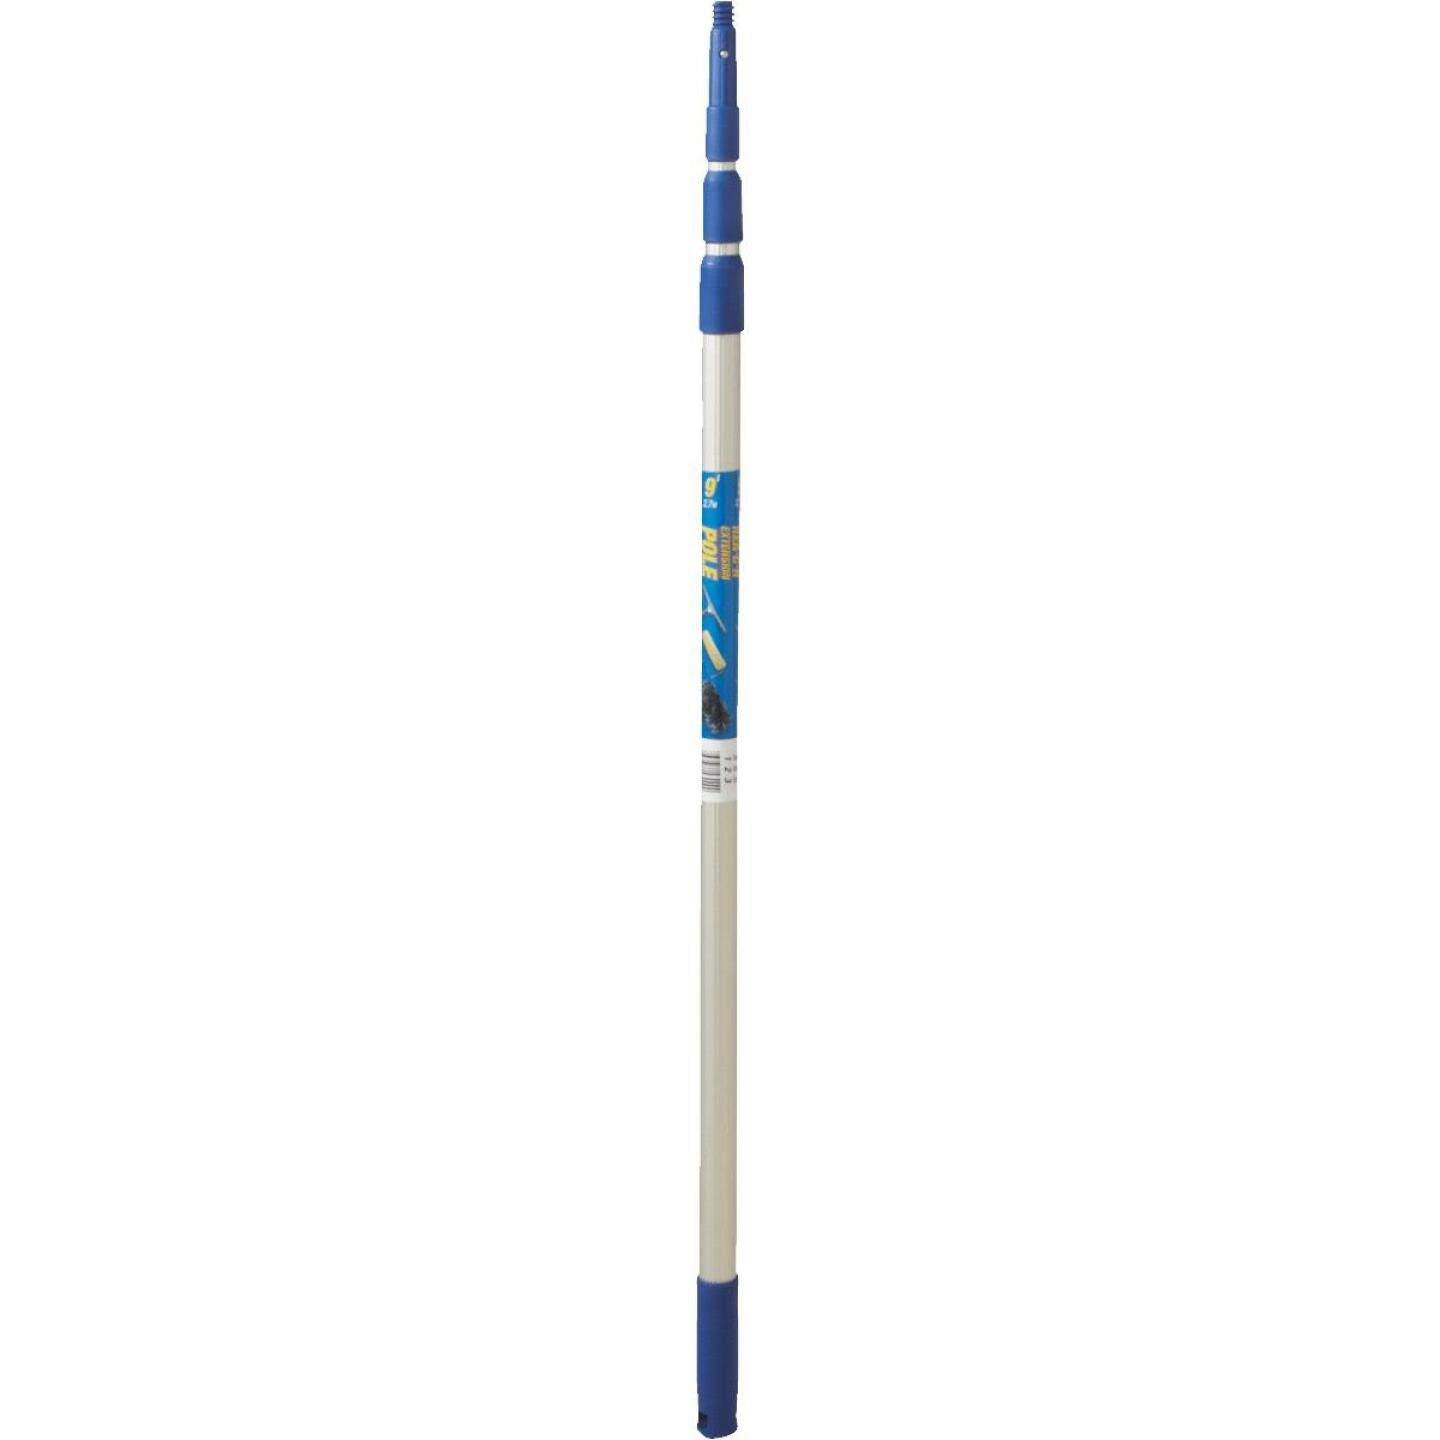 Ettore REA-C-H 8 Ft. Aluminum Extension Pole Image 2